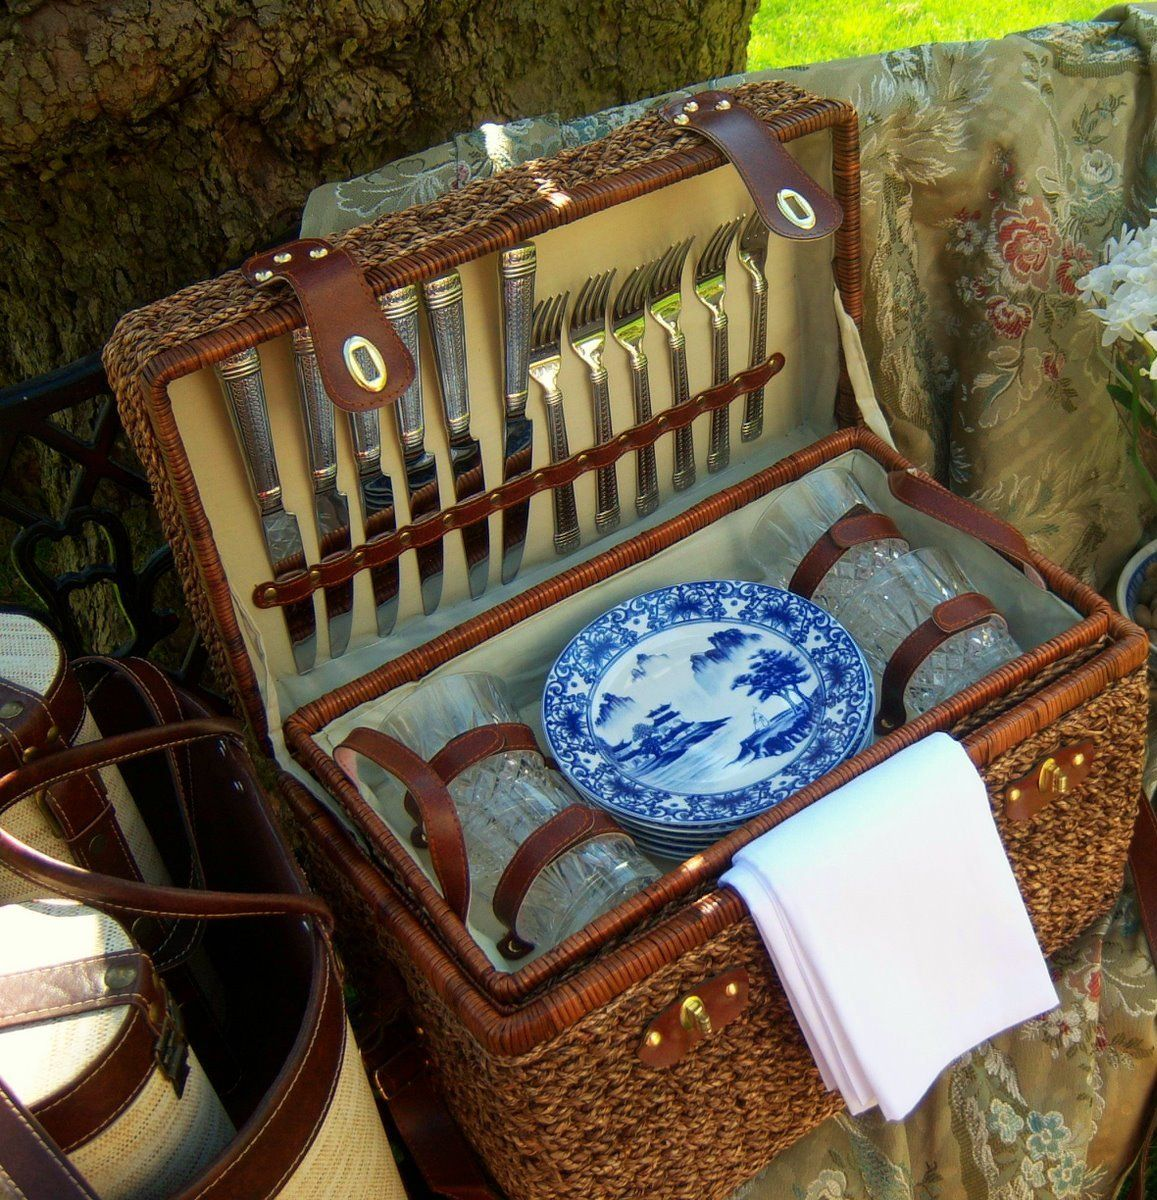 Beaux Mondes Design is where I found this awesome picnic basket.  Too Gorgeous.  And YES, I'm going to put my own together someday.  The store the basket came from has closed. :((